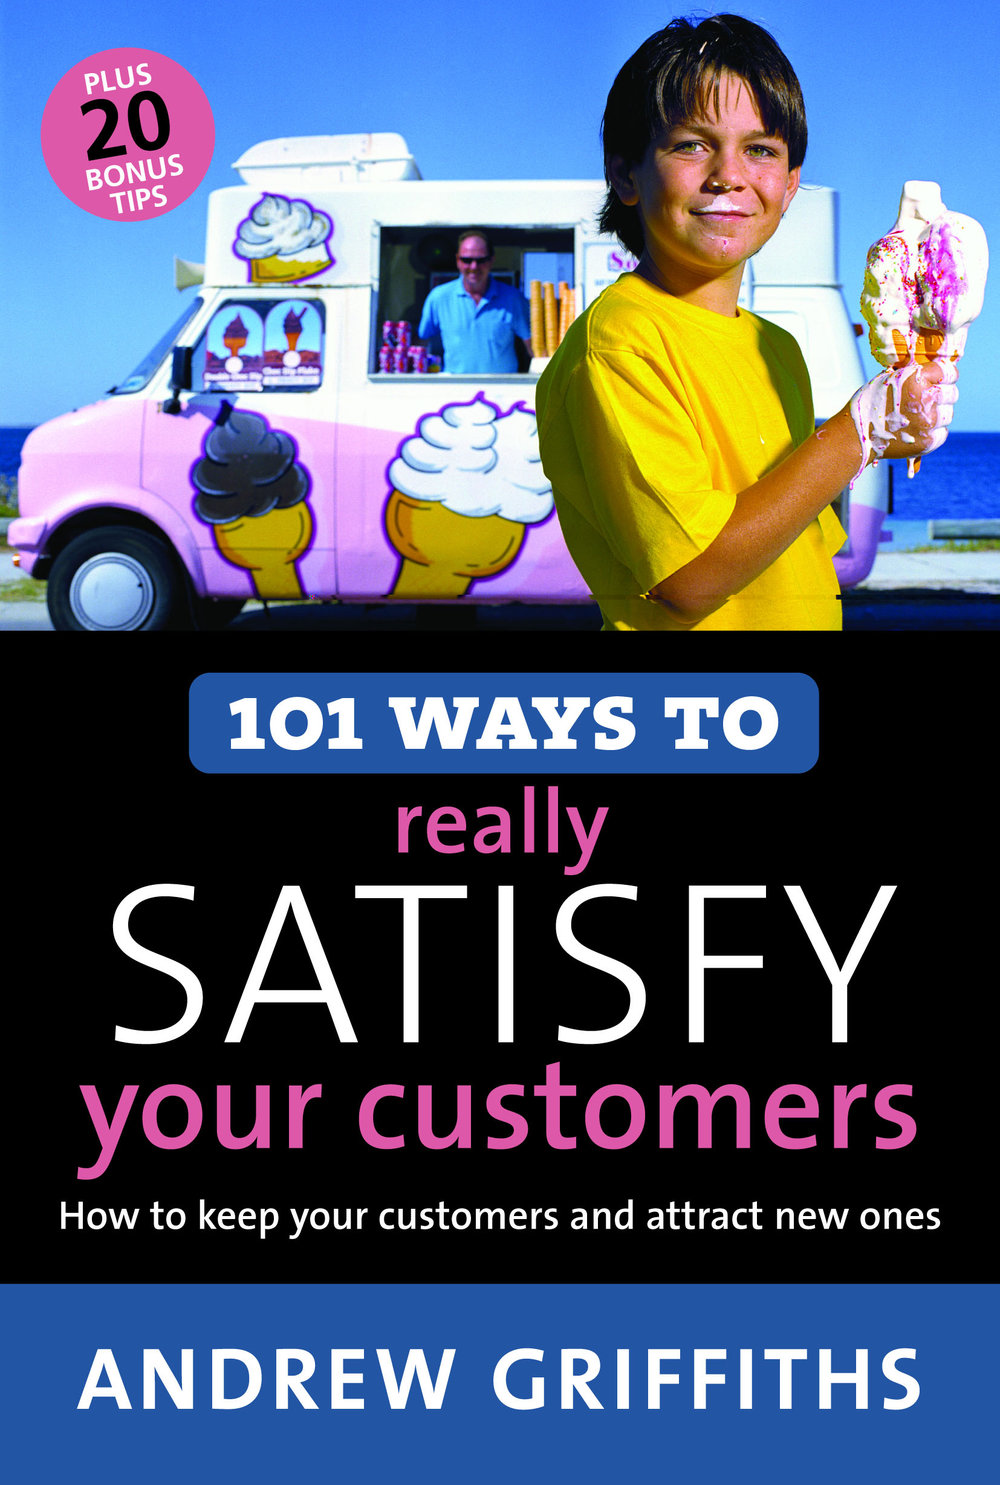 101 Ways to Satisfy.jpg